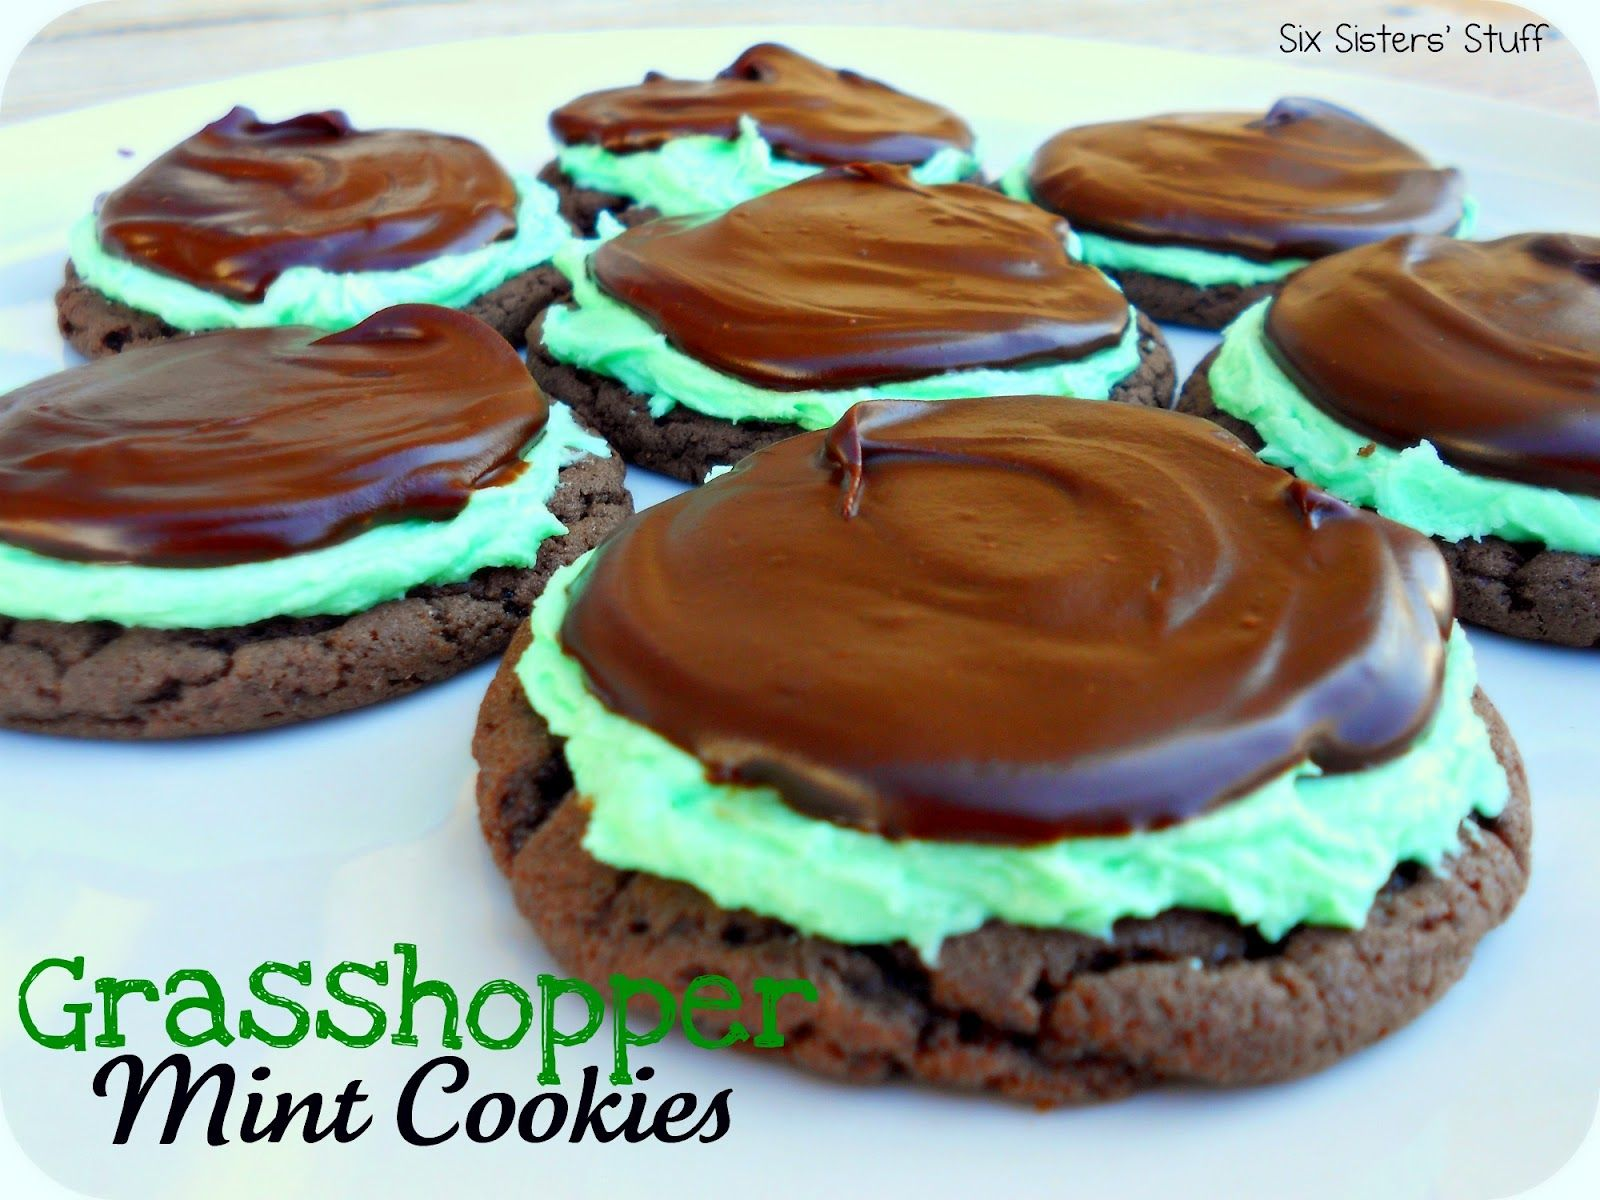 Grasshopper Mint Chocolate Cake Mix Cookies | Six Sisters' Stuff ...